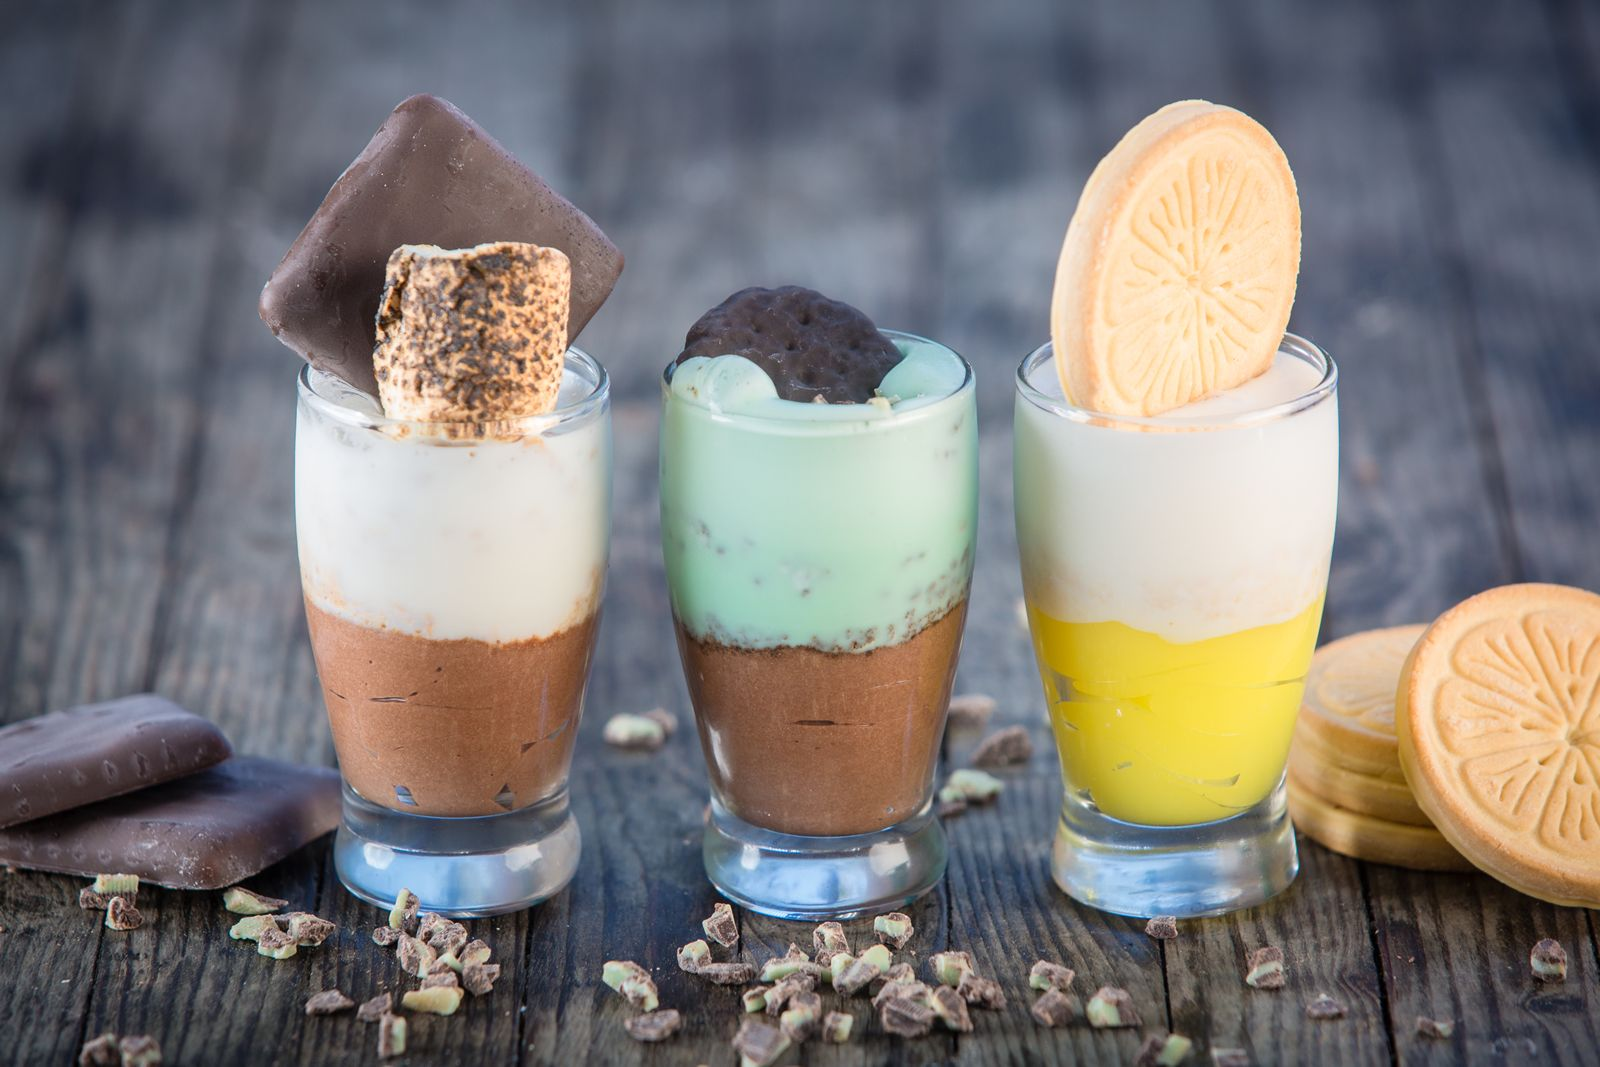 Available through March 7th at the San Diego and Fresno locations, Slater's 50/50 launches the Girl Scout Cookie Dessert Trio featuring Smore's, the Thin Mint and Frosted Lemonade.